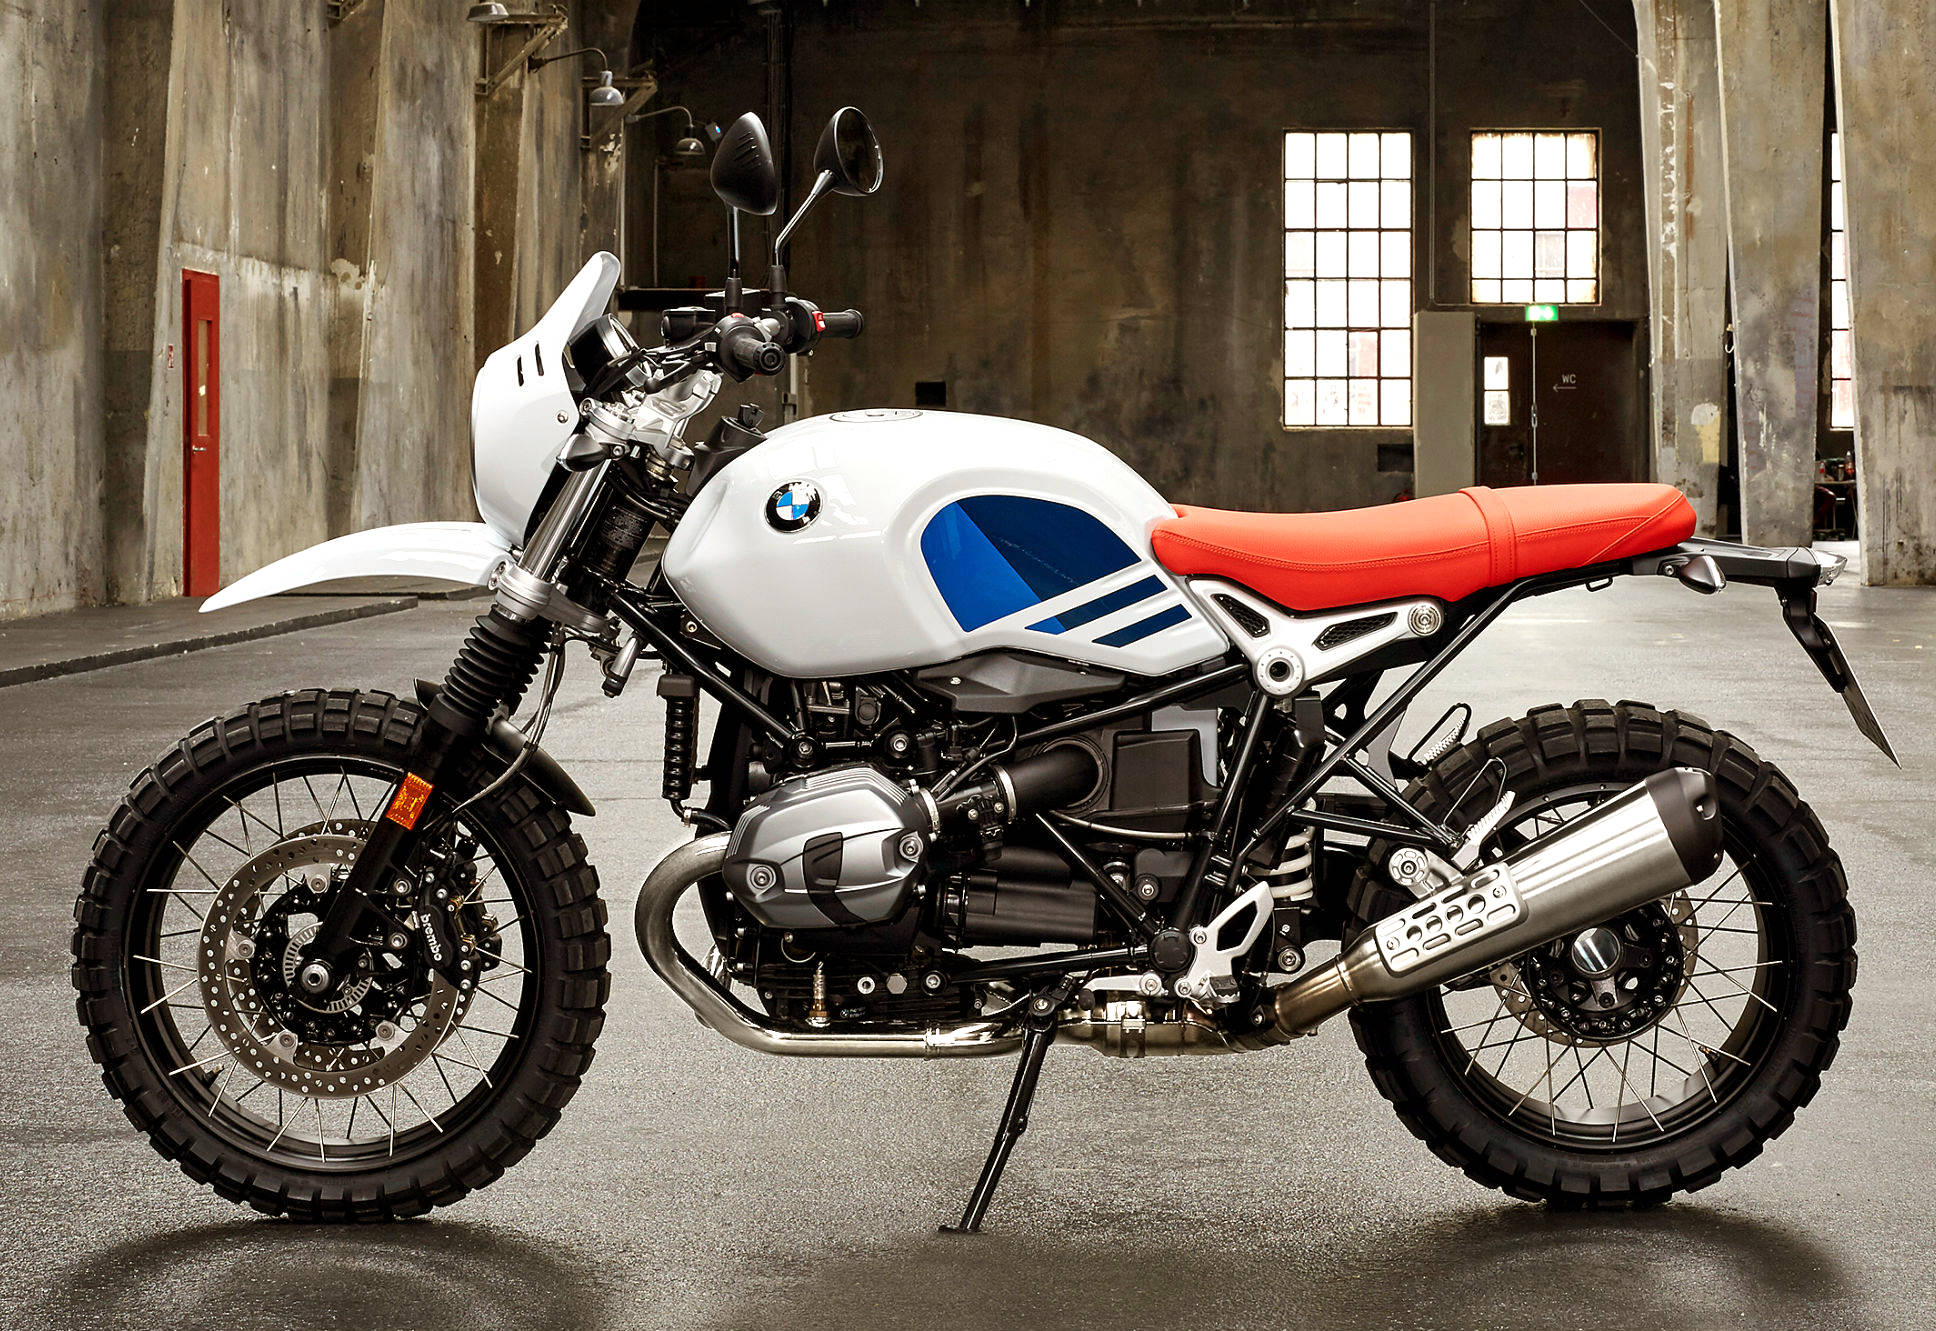 bmw r ninet urban g s in showrooms this june priced at. Black Bedroom Furniture Sets. Home Design Ideas